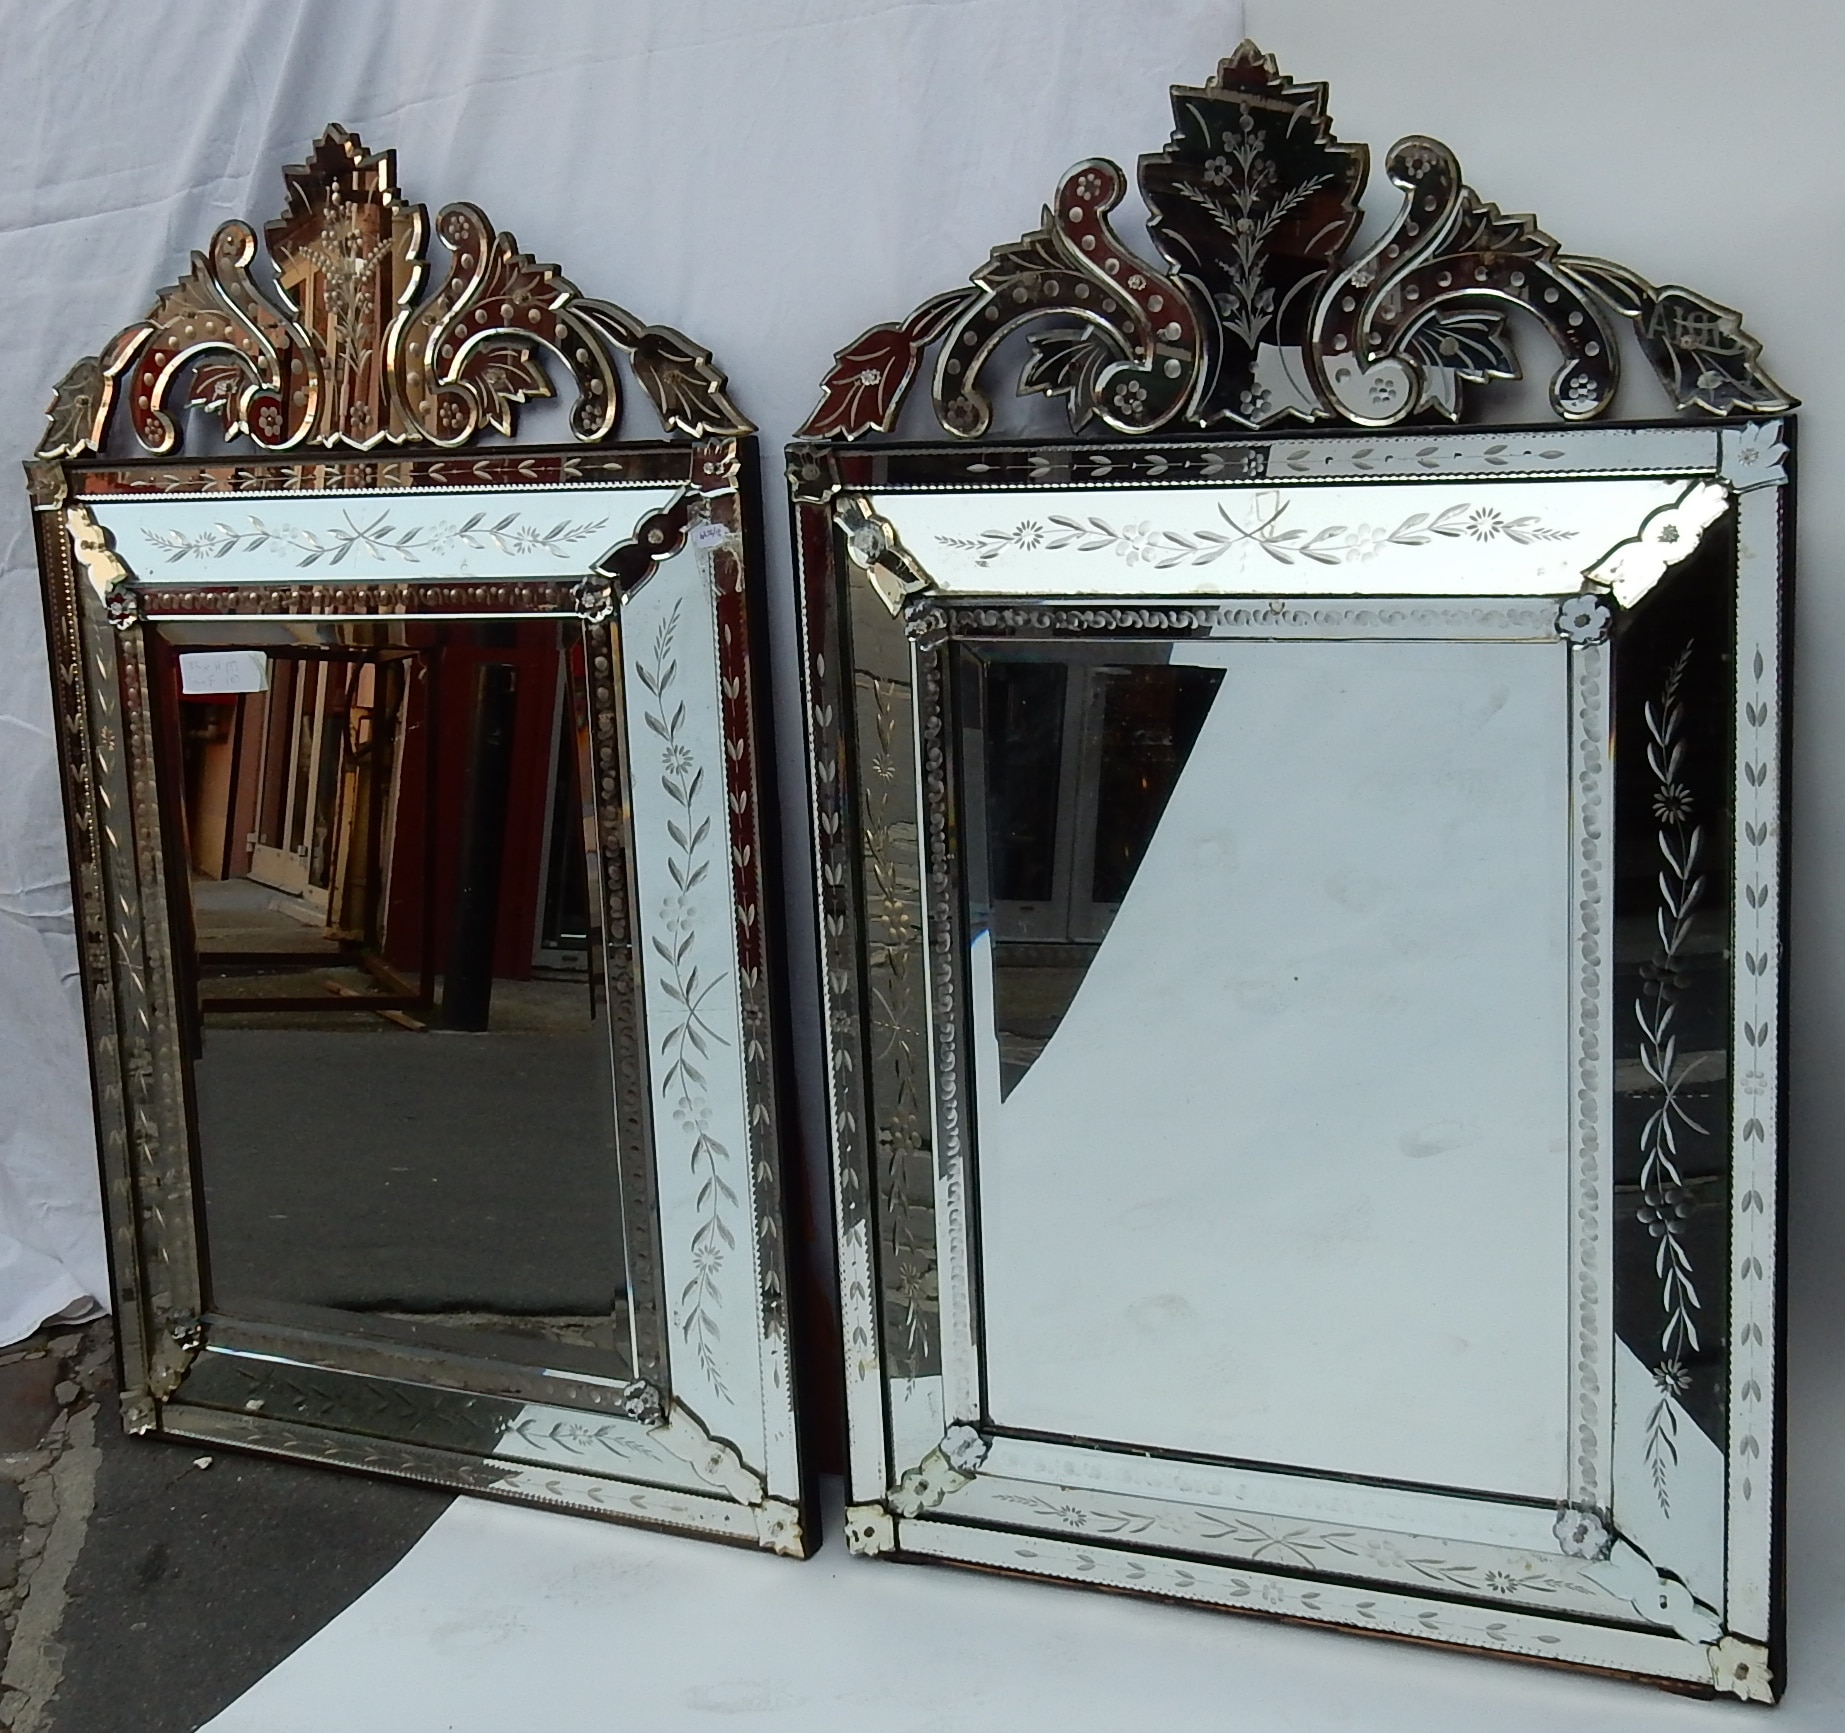 1950 S Pair Of Venetian Mirrors With Floral Decor And Pediment Abcpascal Antiquites